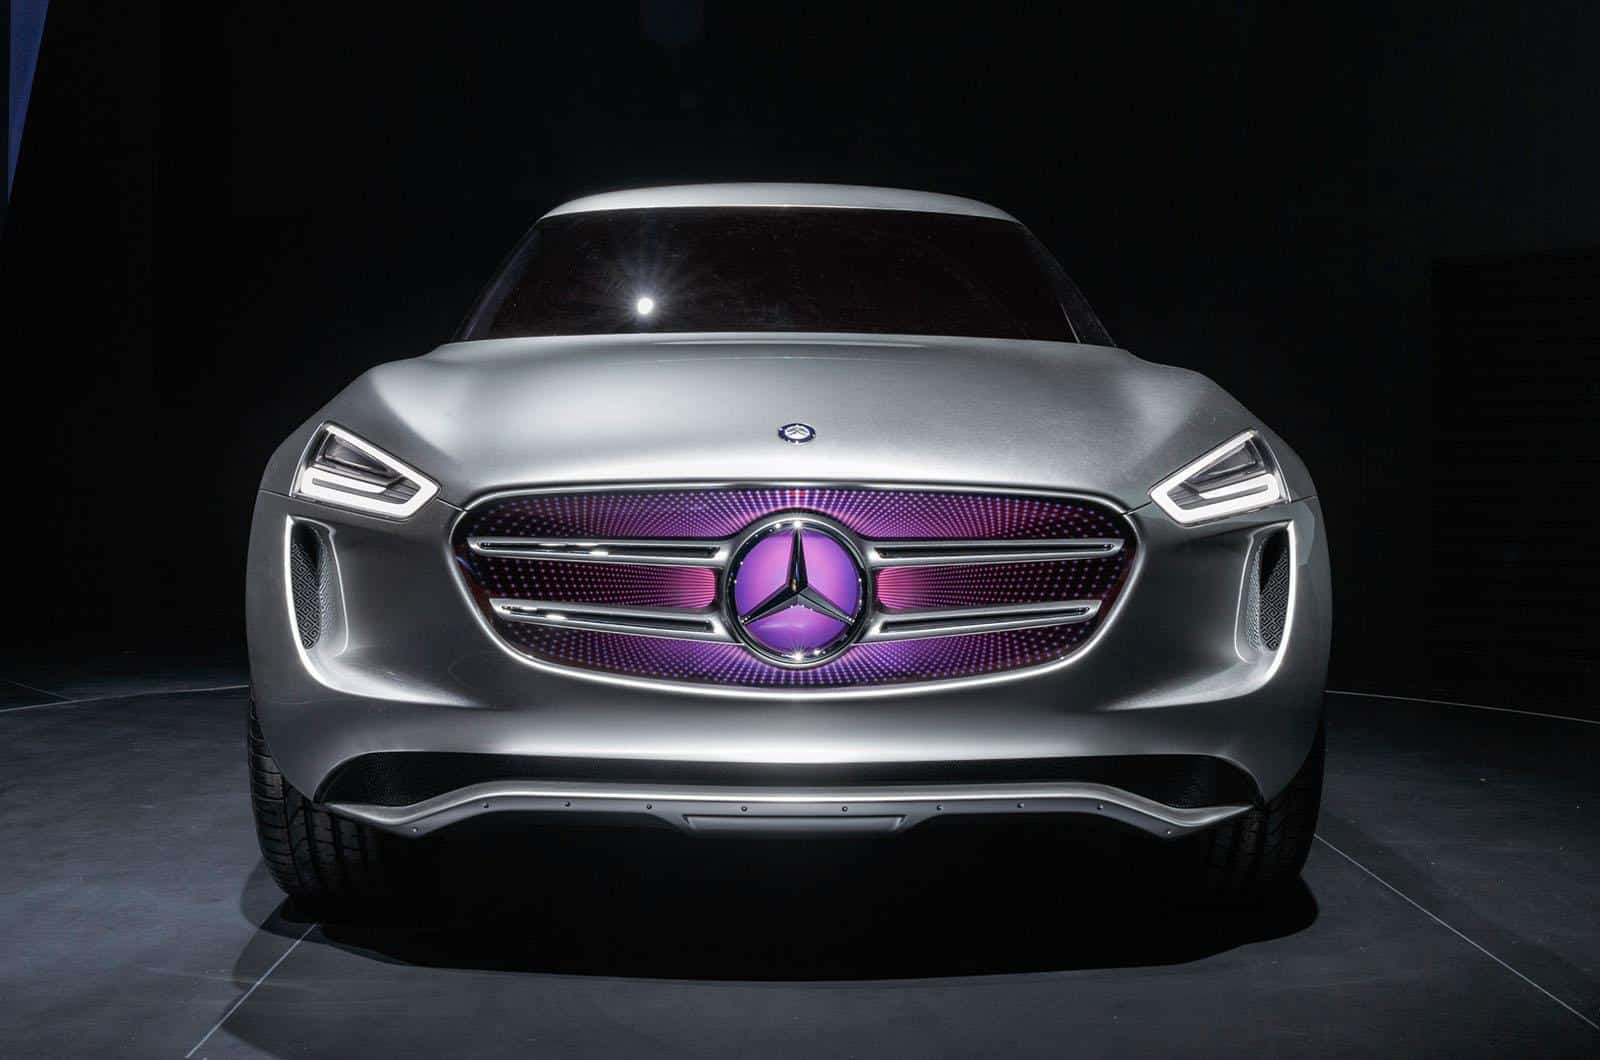 Los Angeles 2014 : le surprenant Mercedes G-Code Concept